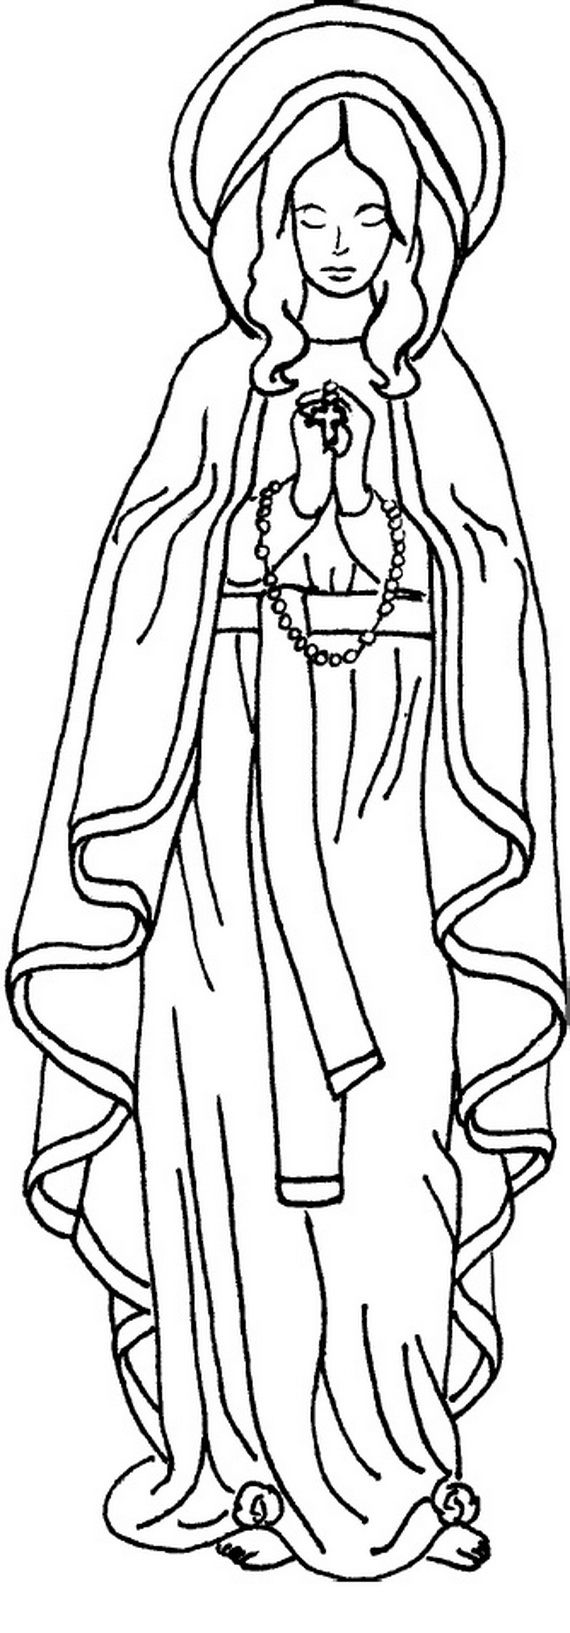 Immaculate Conception Coloring Pages | Immaculate conception ...